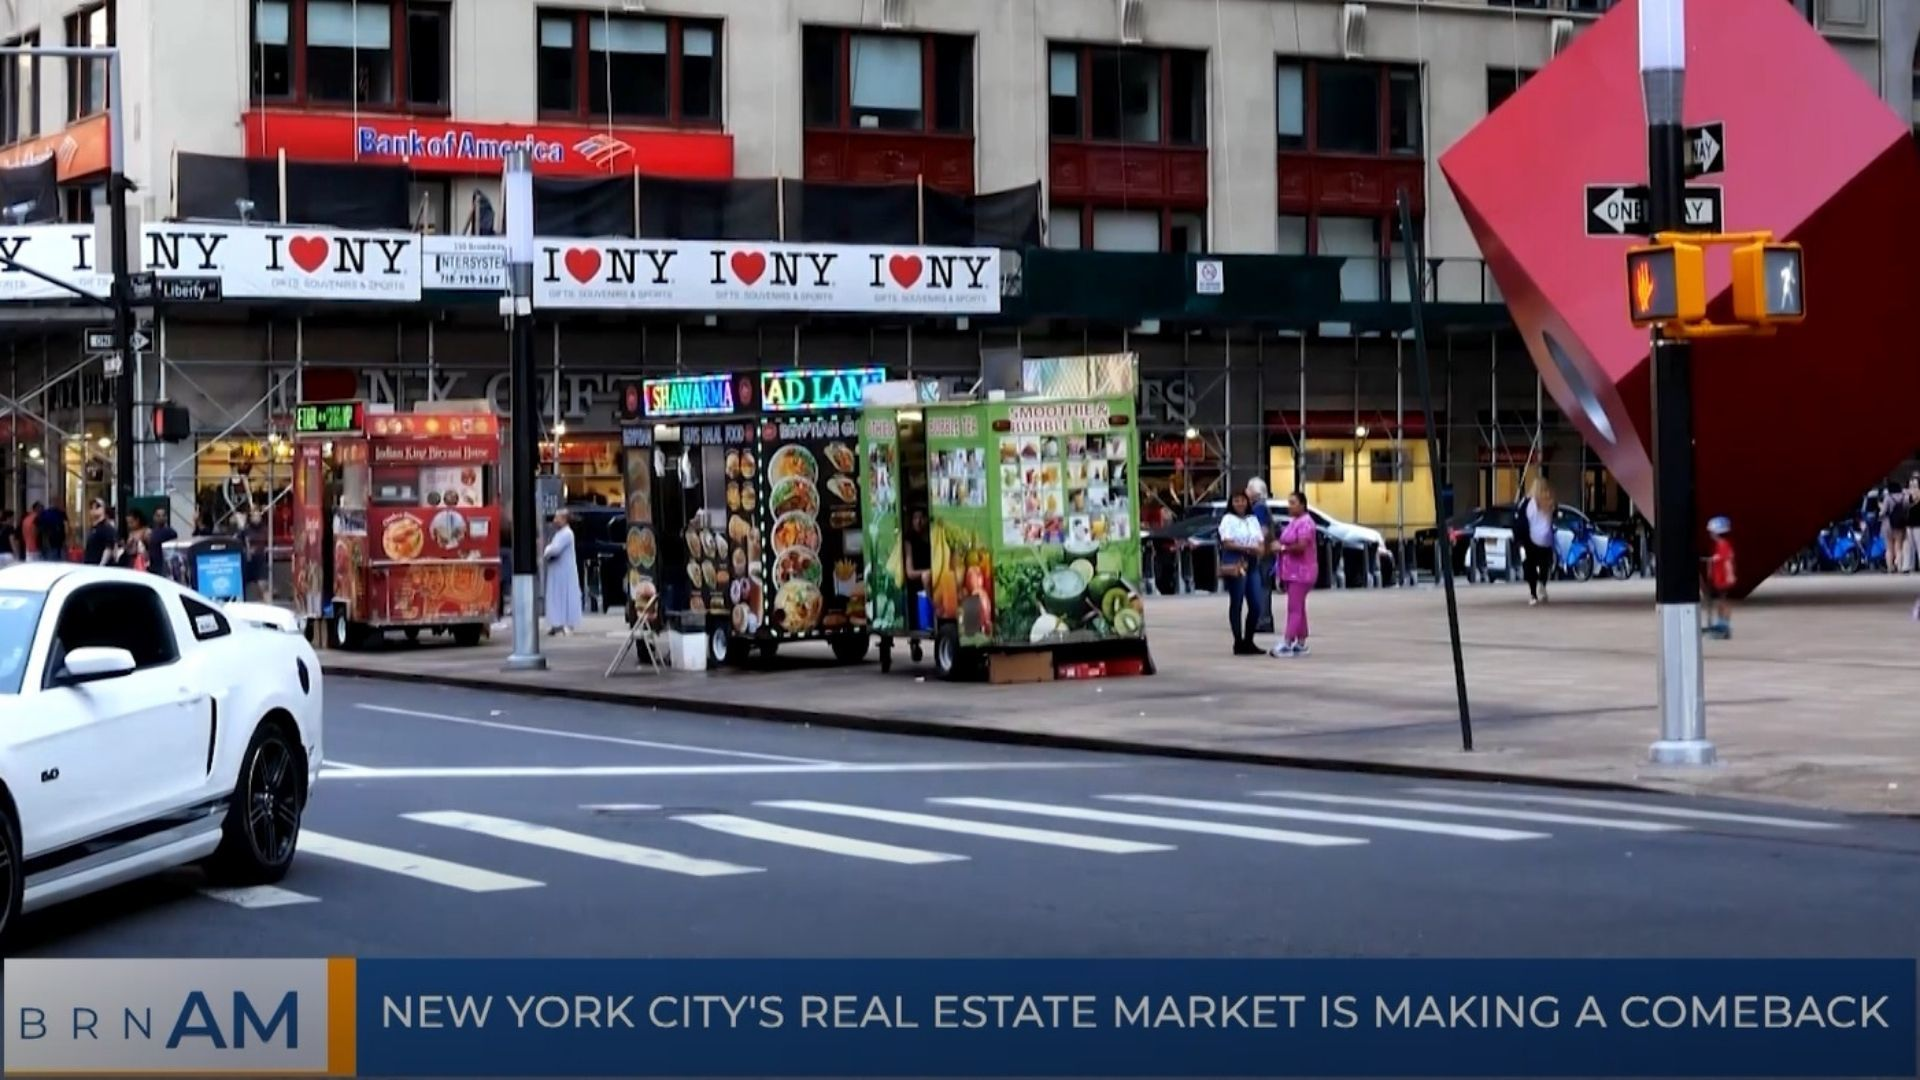 BRN AM | New York City's real estate market is making a comeback